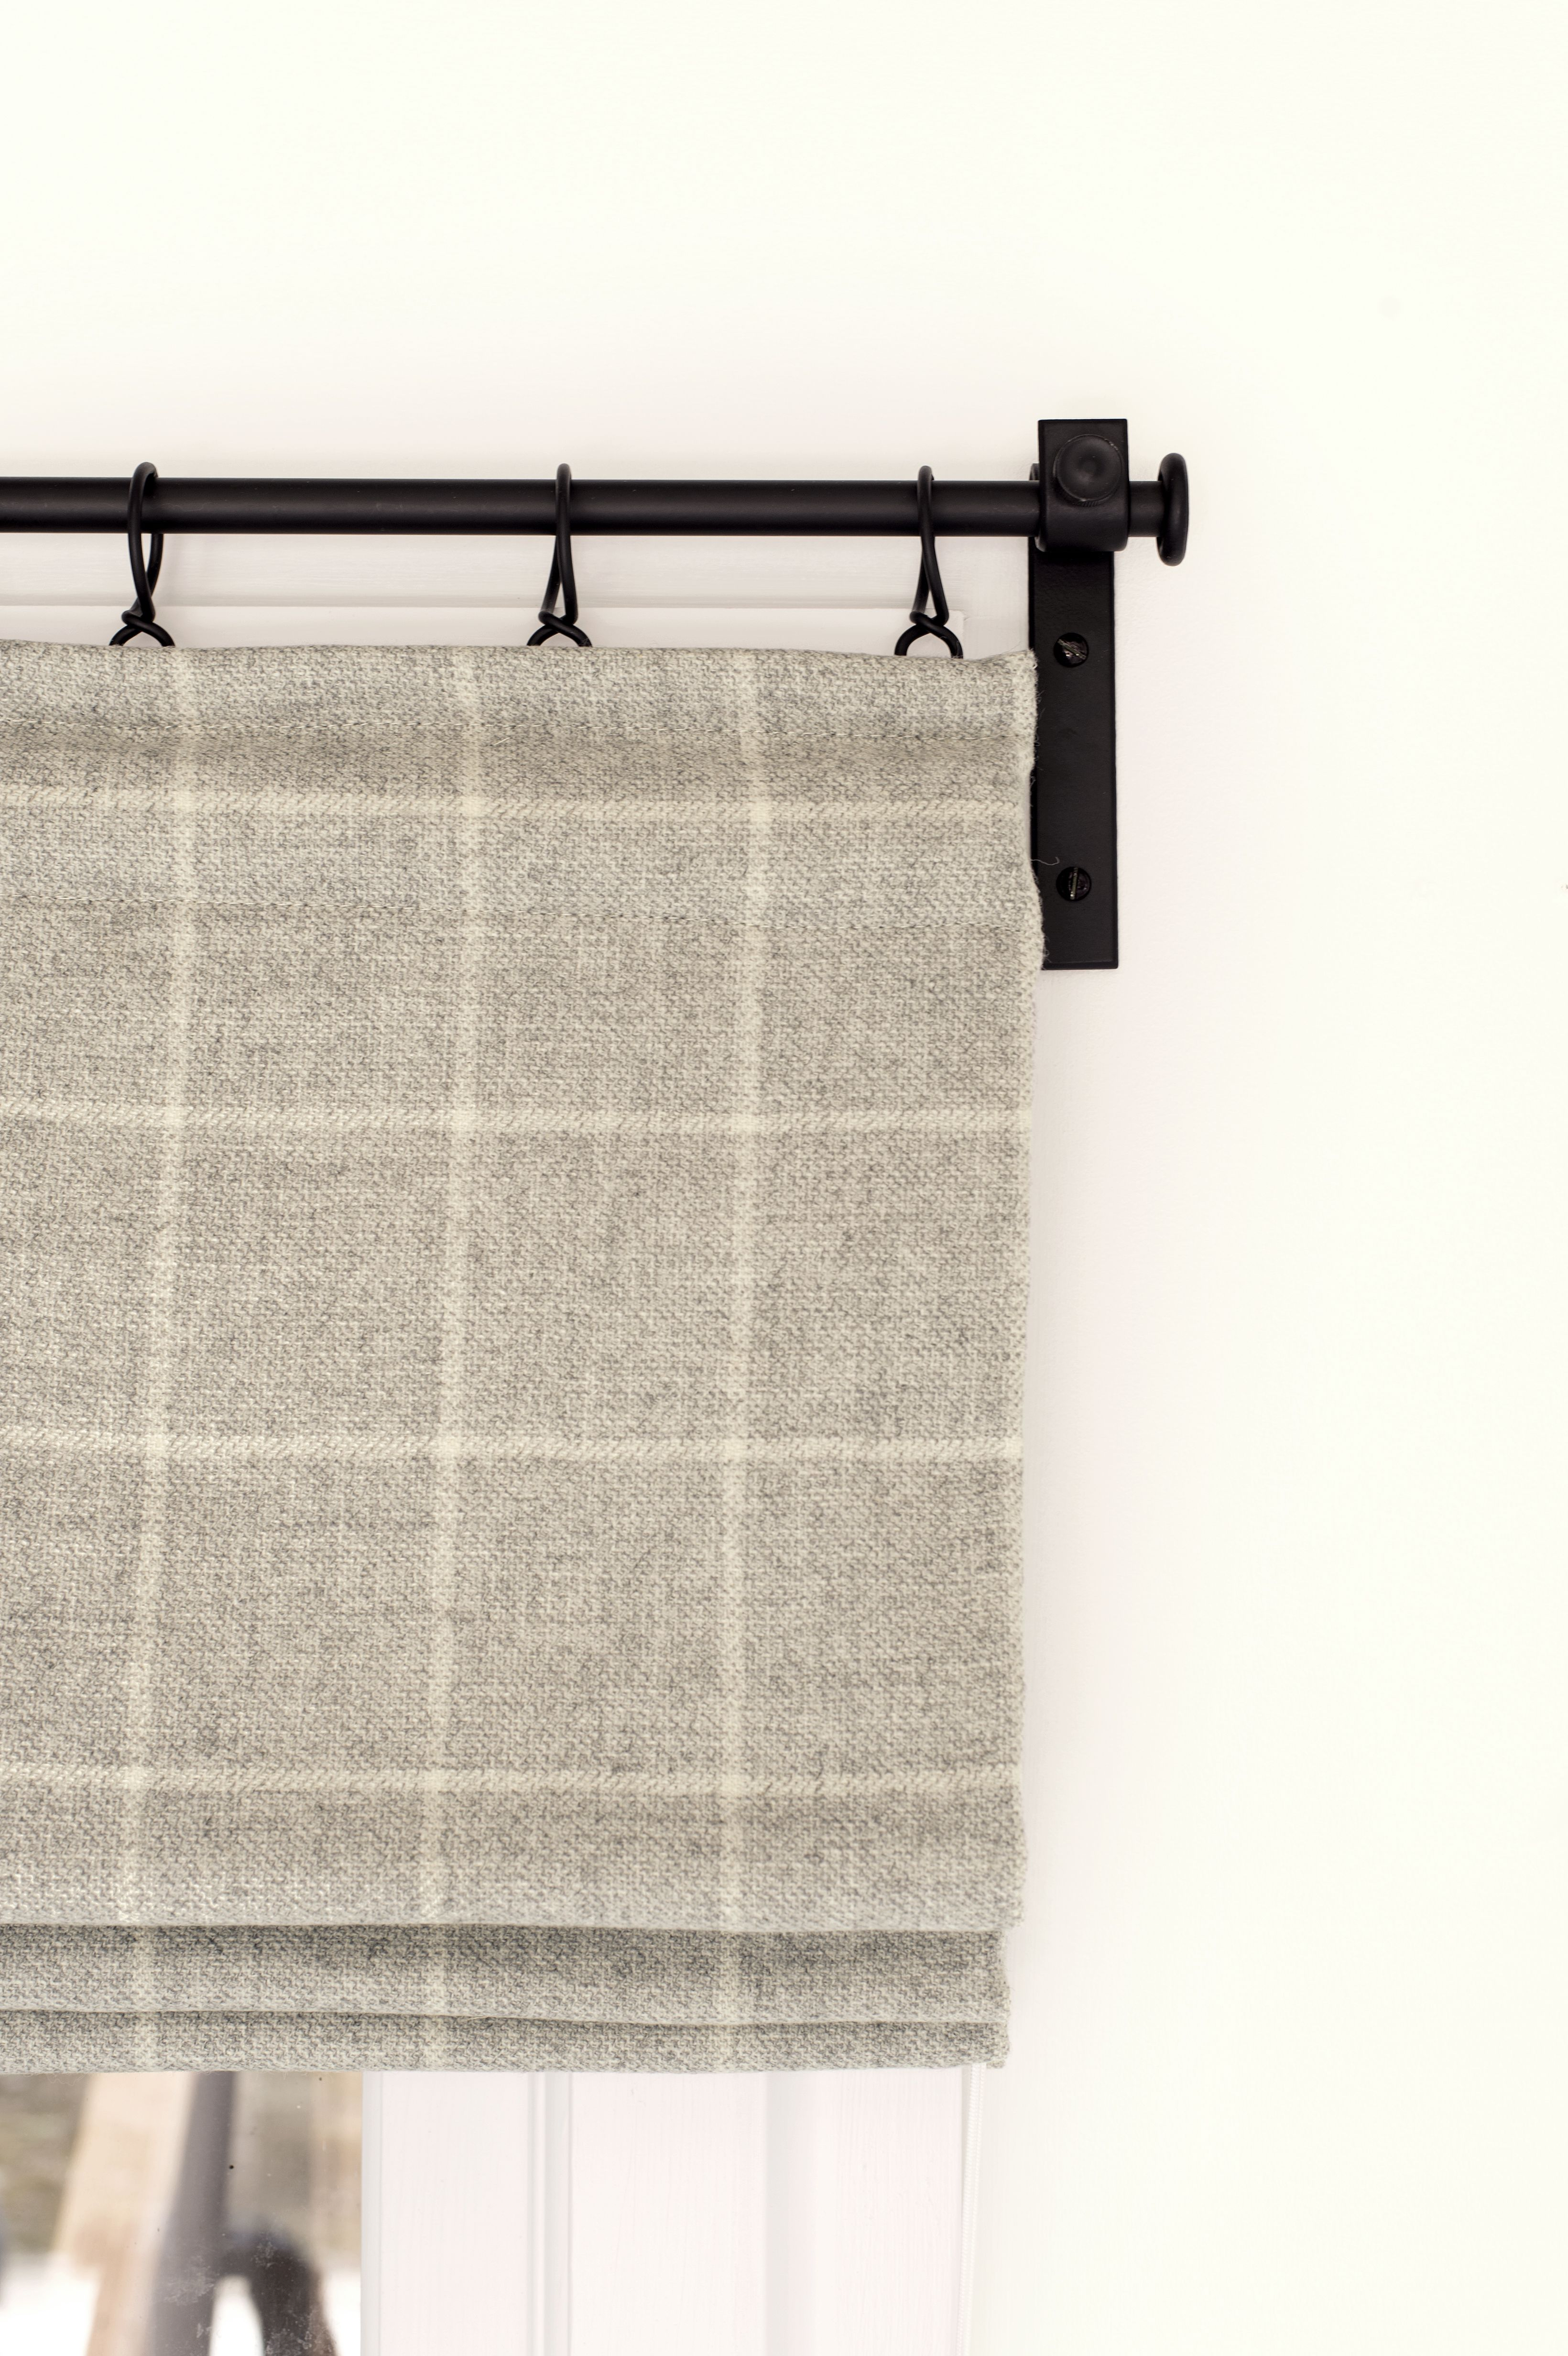 10 Kitchen And Home Decor Items Every 20 Something Needs: Cosy Soft Wool Blinds Work Perfectly With The Clean Lines